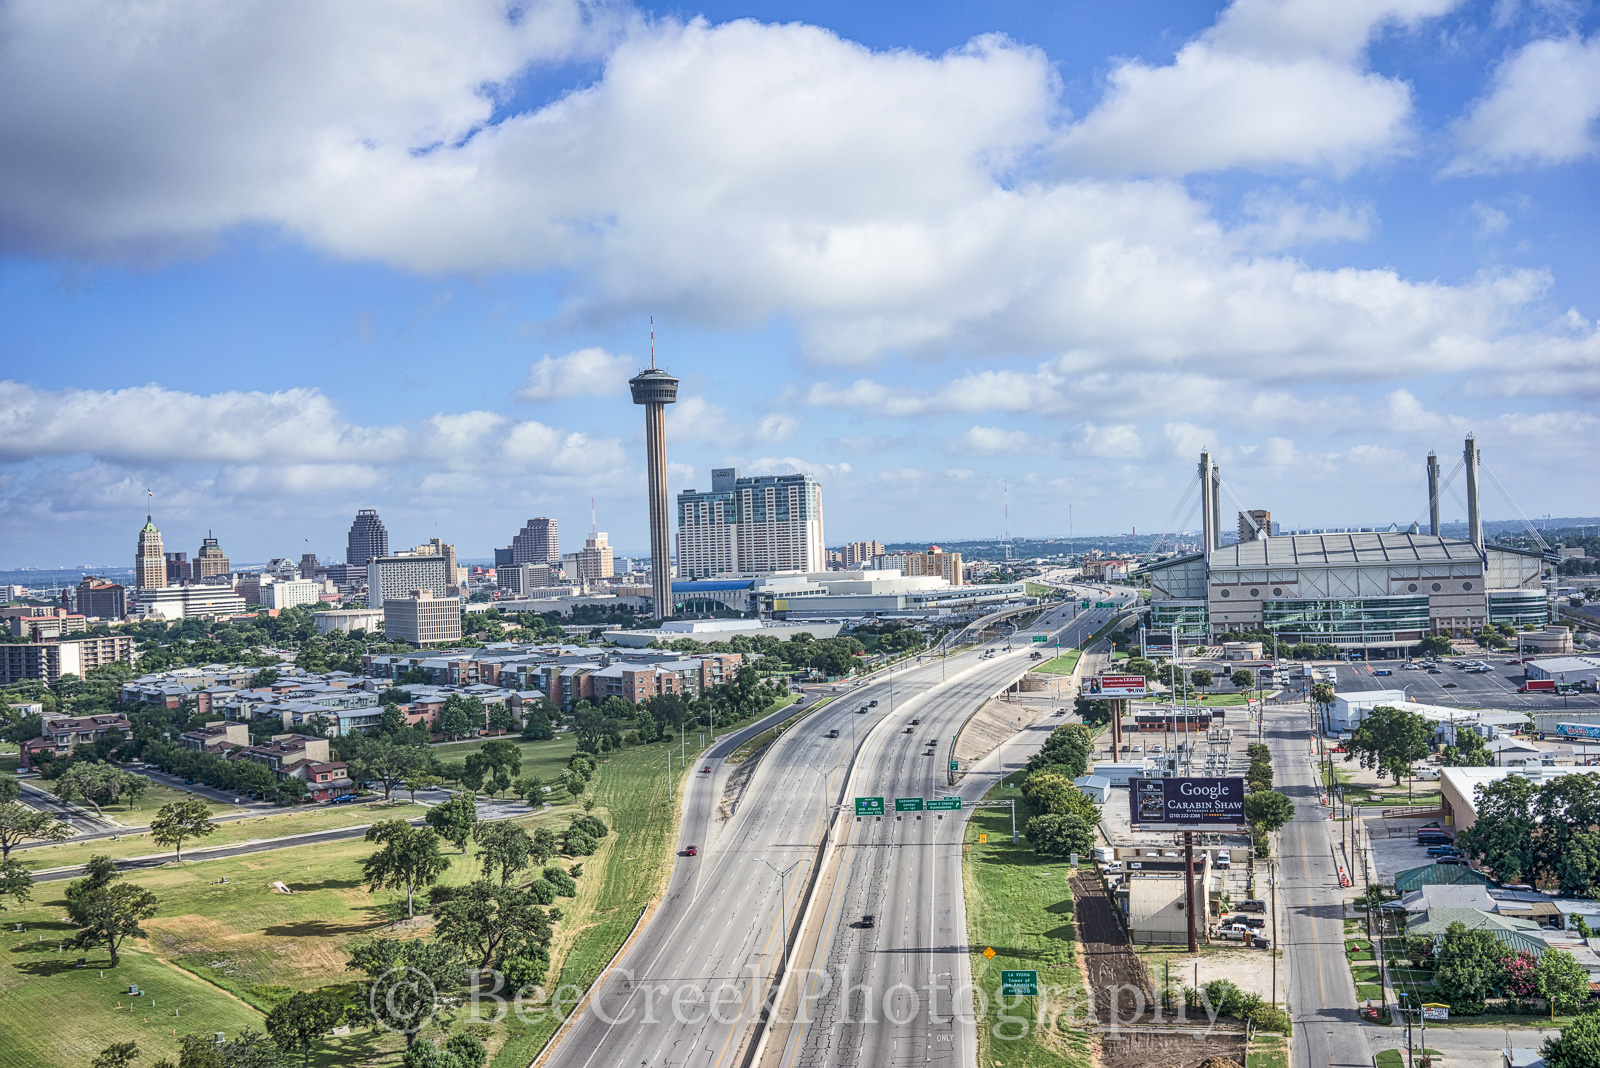 Alamo Dome, Bank of American Plaza, Grand Hyatt, Henry B Gonzales convention, Marriott, River Walk, San Antonio, Tower Life building, Tower of Americas, UT SA, aerial, cityscape, scapes, skyline, skyl, photo